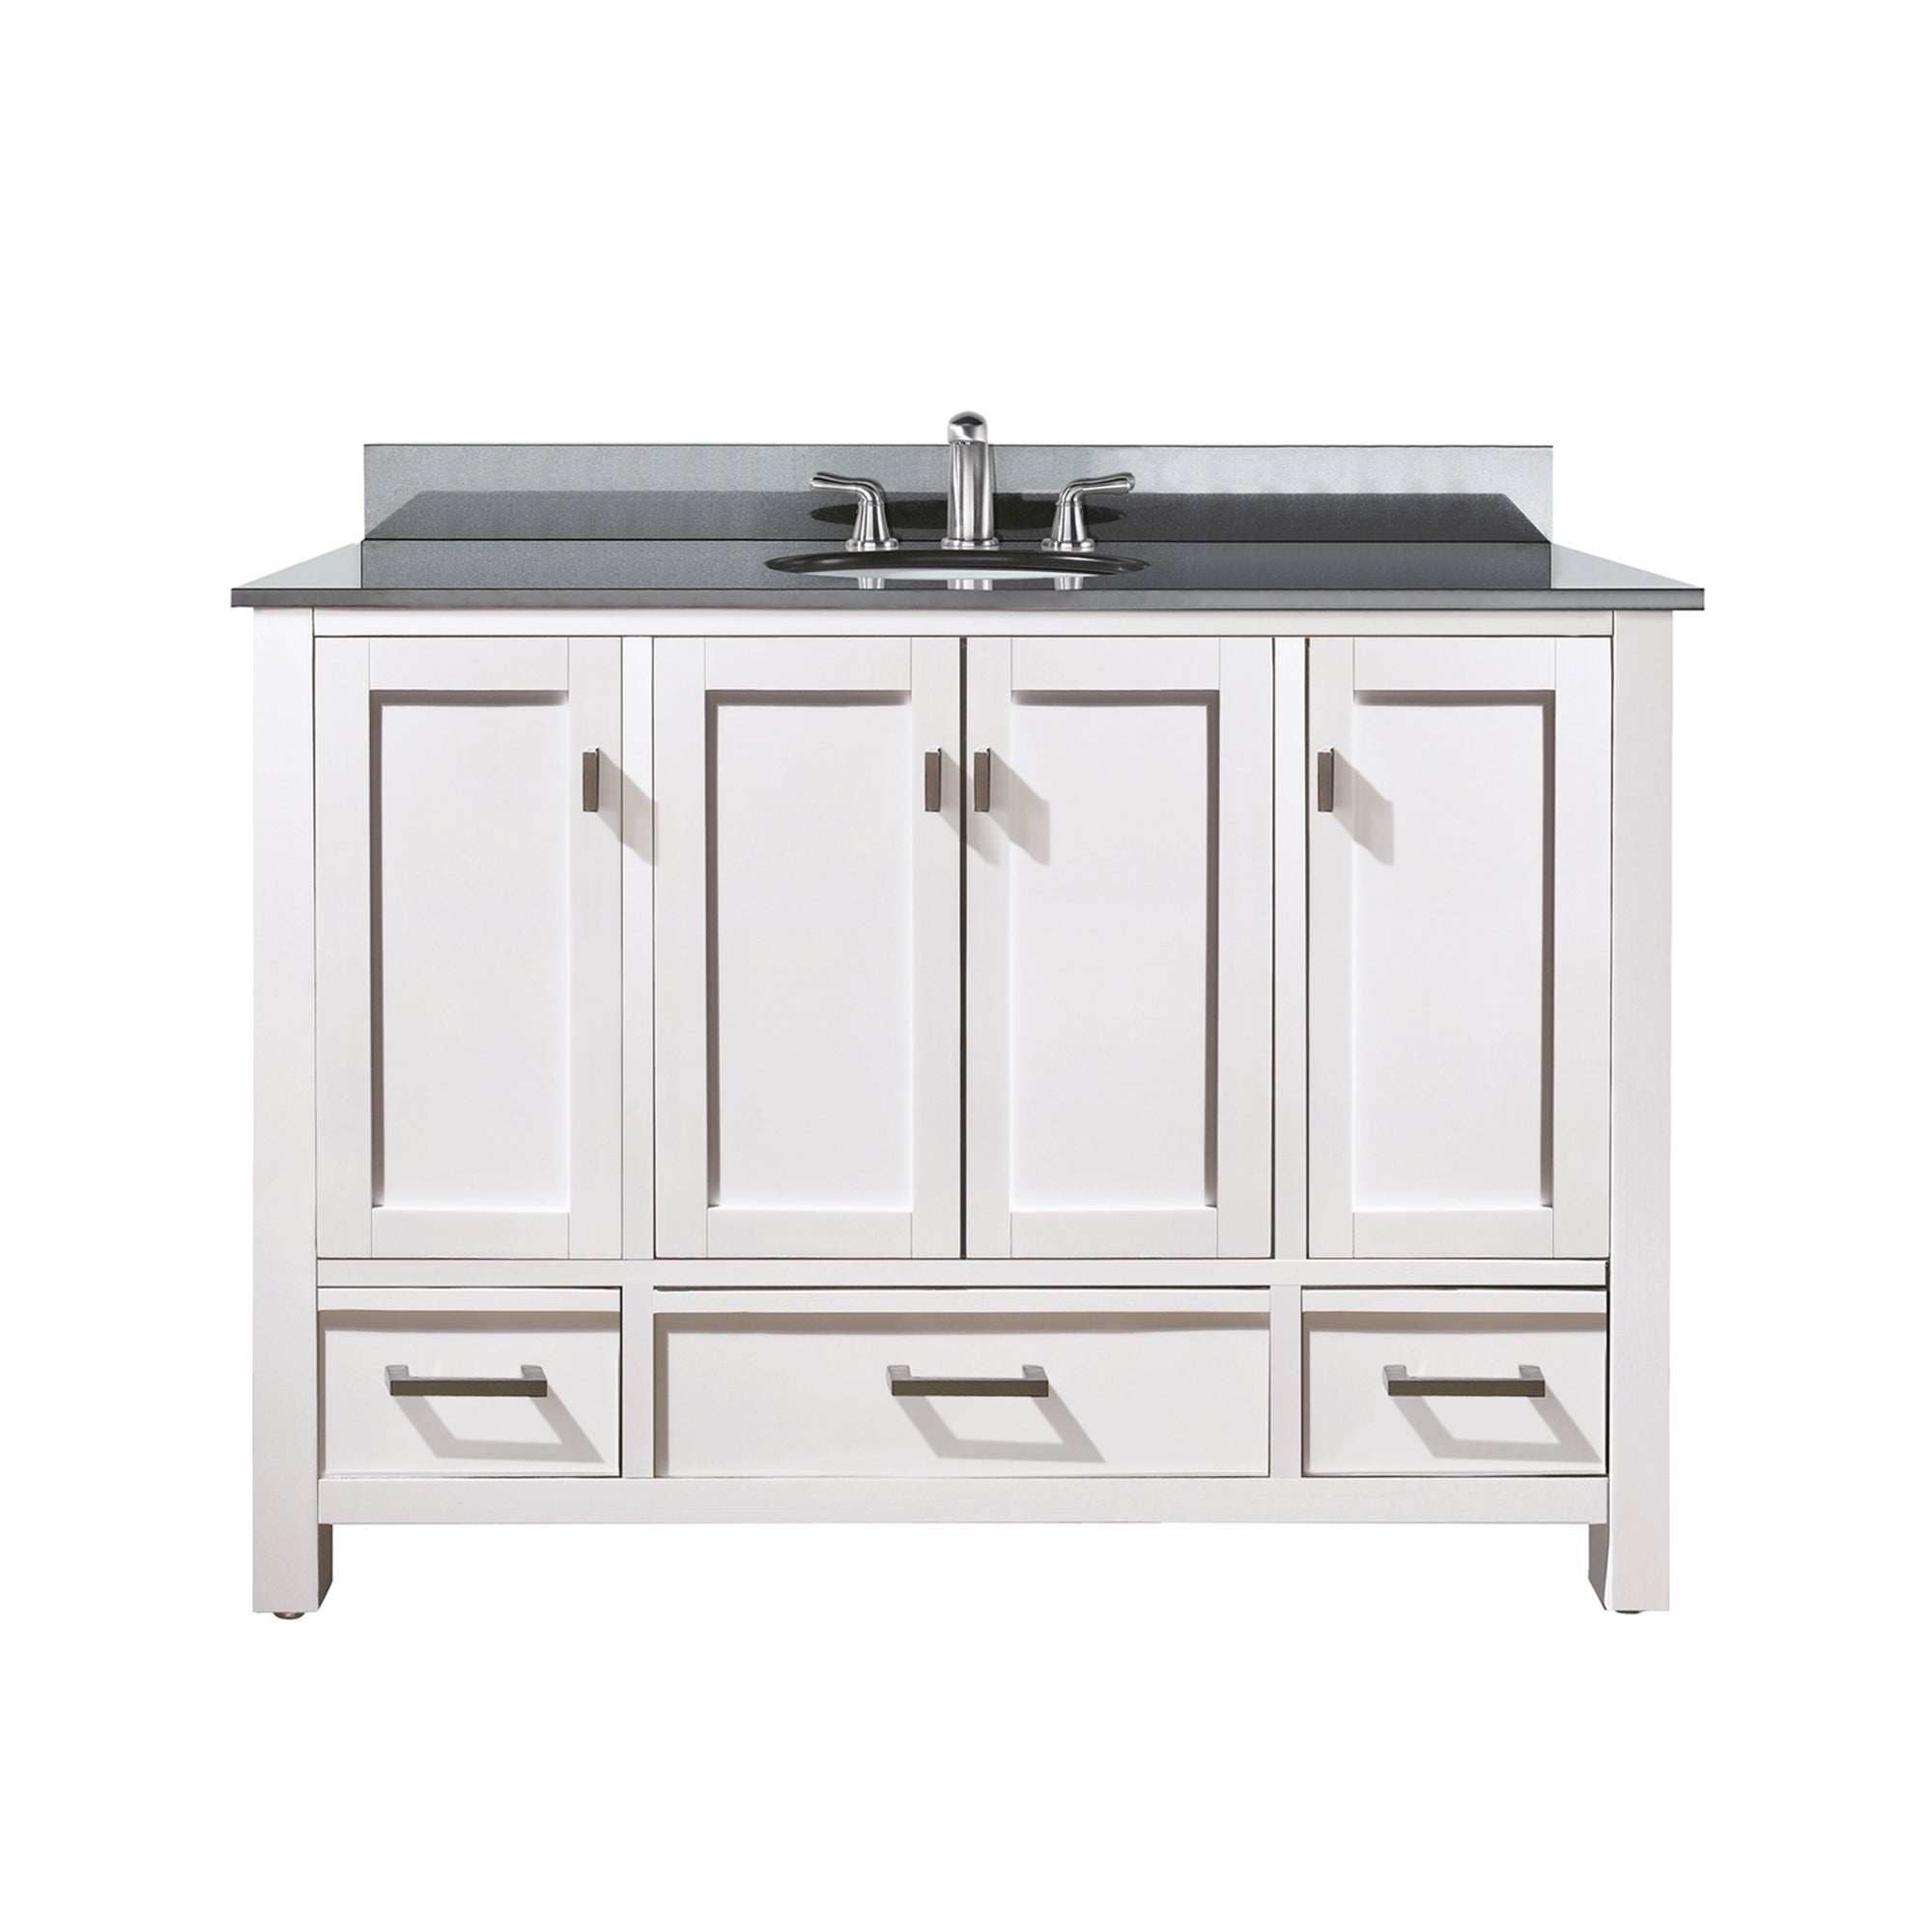 Avanity Modero 48 Inch White Finish Vanity Combo Free Shipping Today 12532327